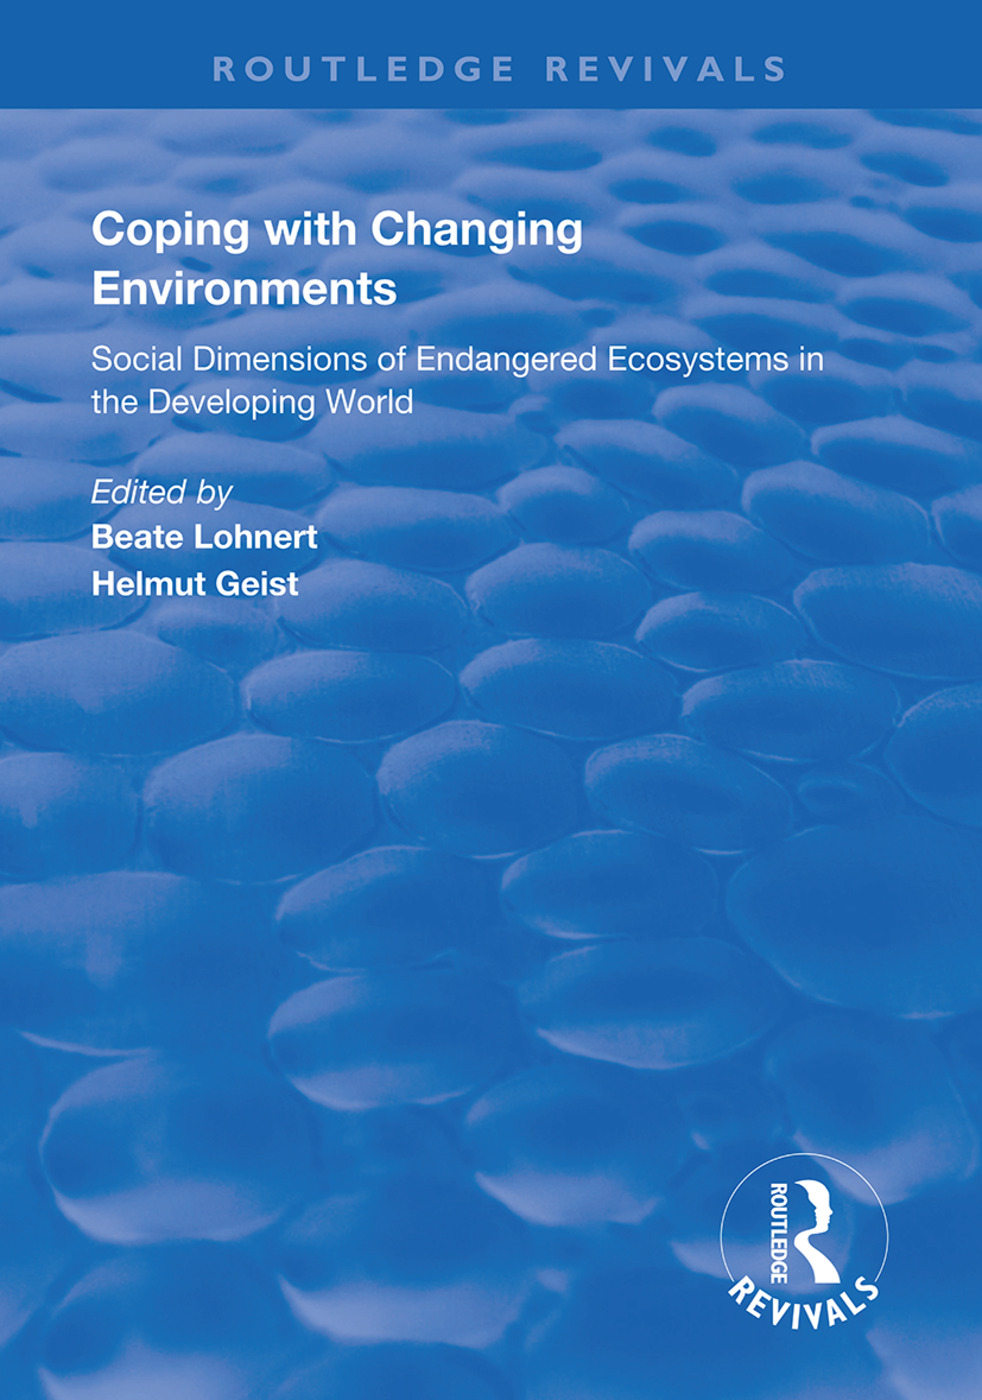 Coping with Changing Environments